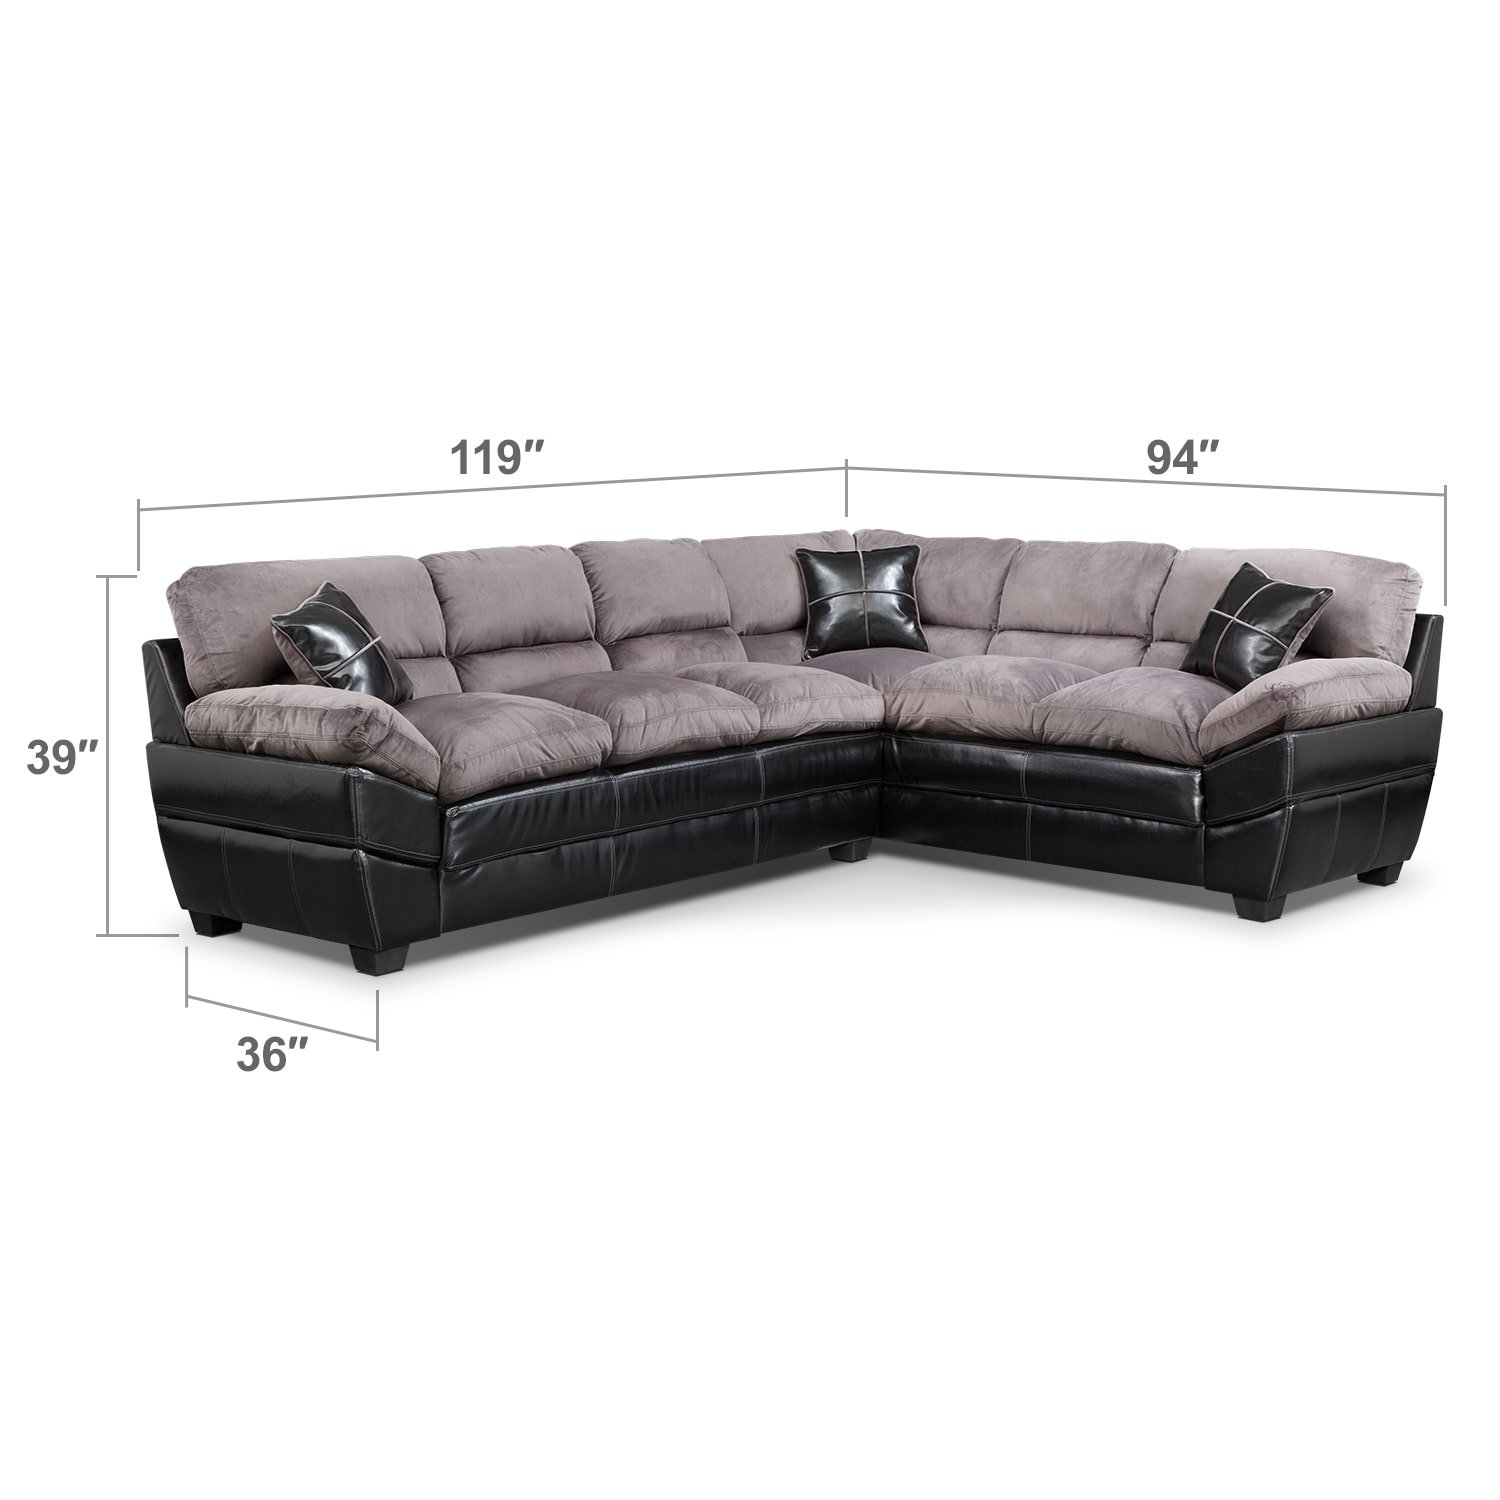 Living Room Furniture - Chandler Gray II 2 Pc. Sectional